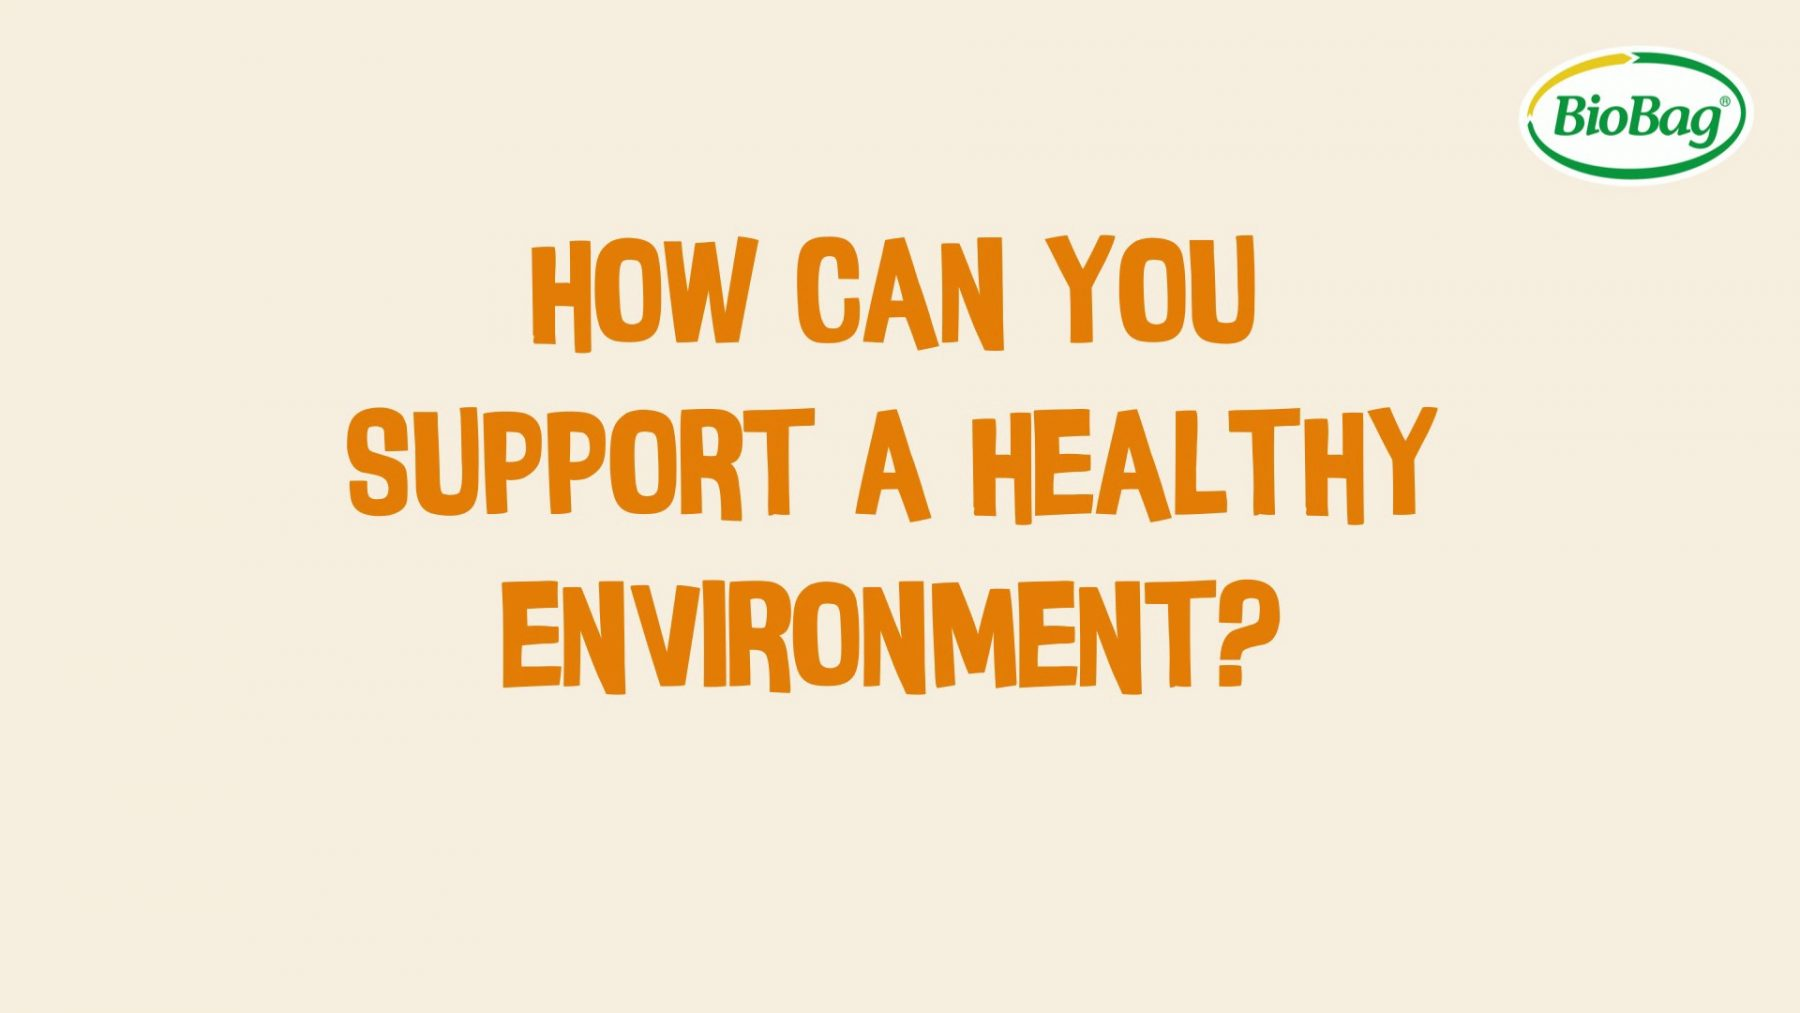 How can you support a healthy environment